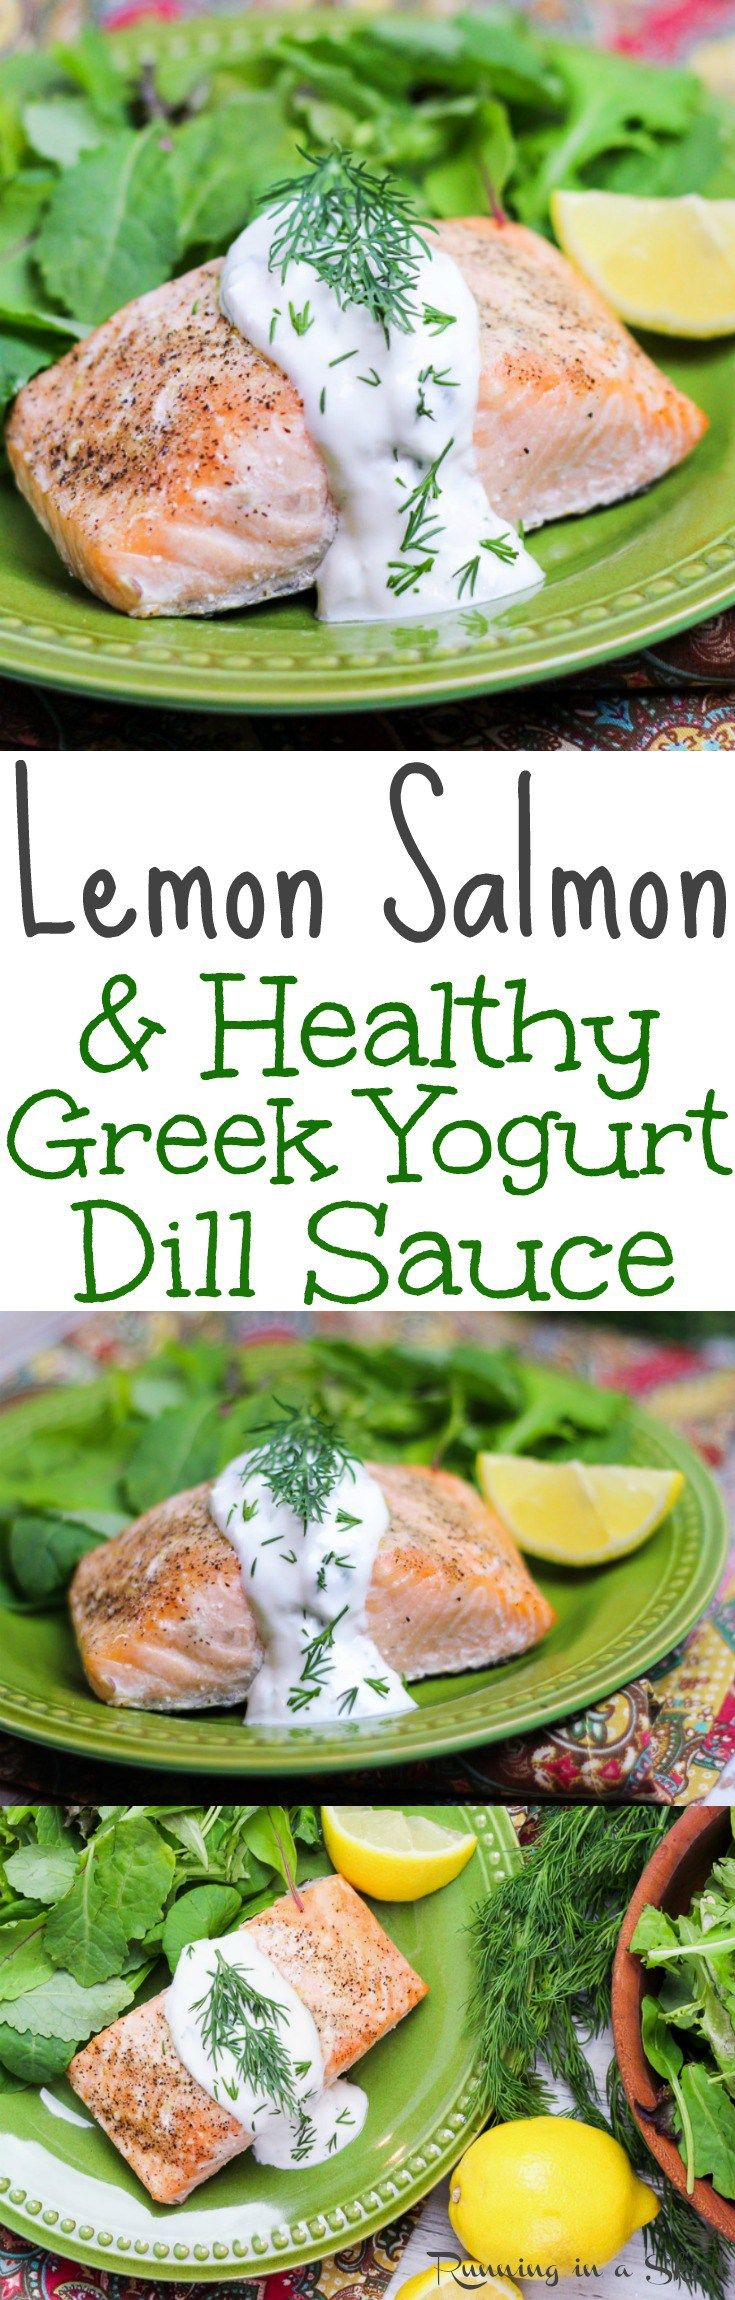 Oven Baked Lemon Salmon is topped with a simple Greek yogurt dill sauce for salmon. It's the perfect healthy meal. Hi friends! The Hubs and I eat salmon about once a week. It is super